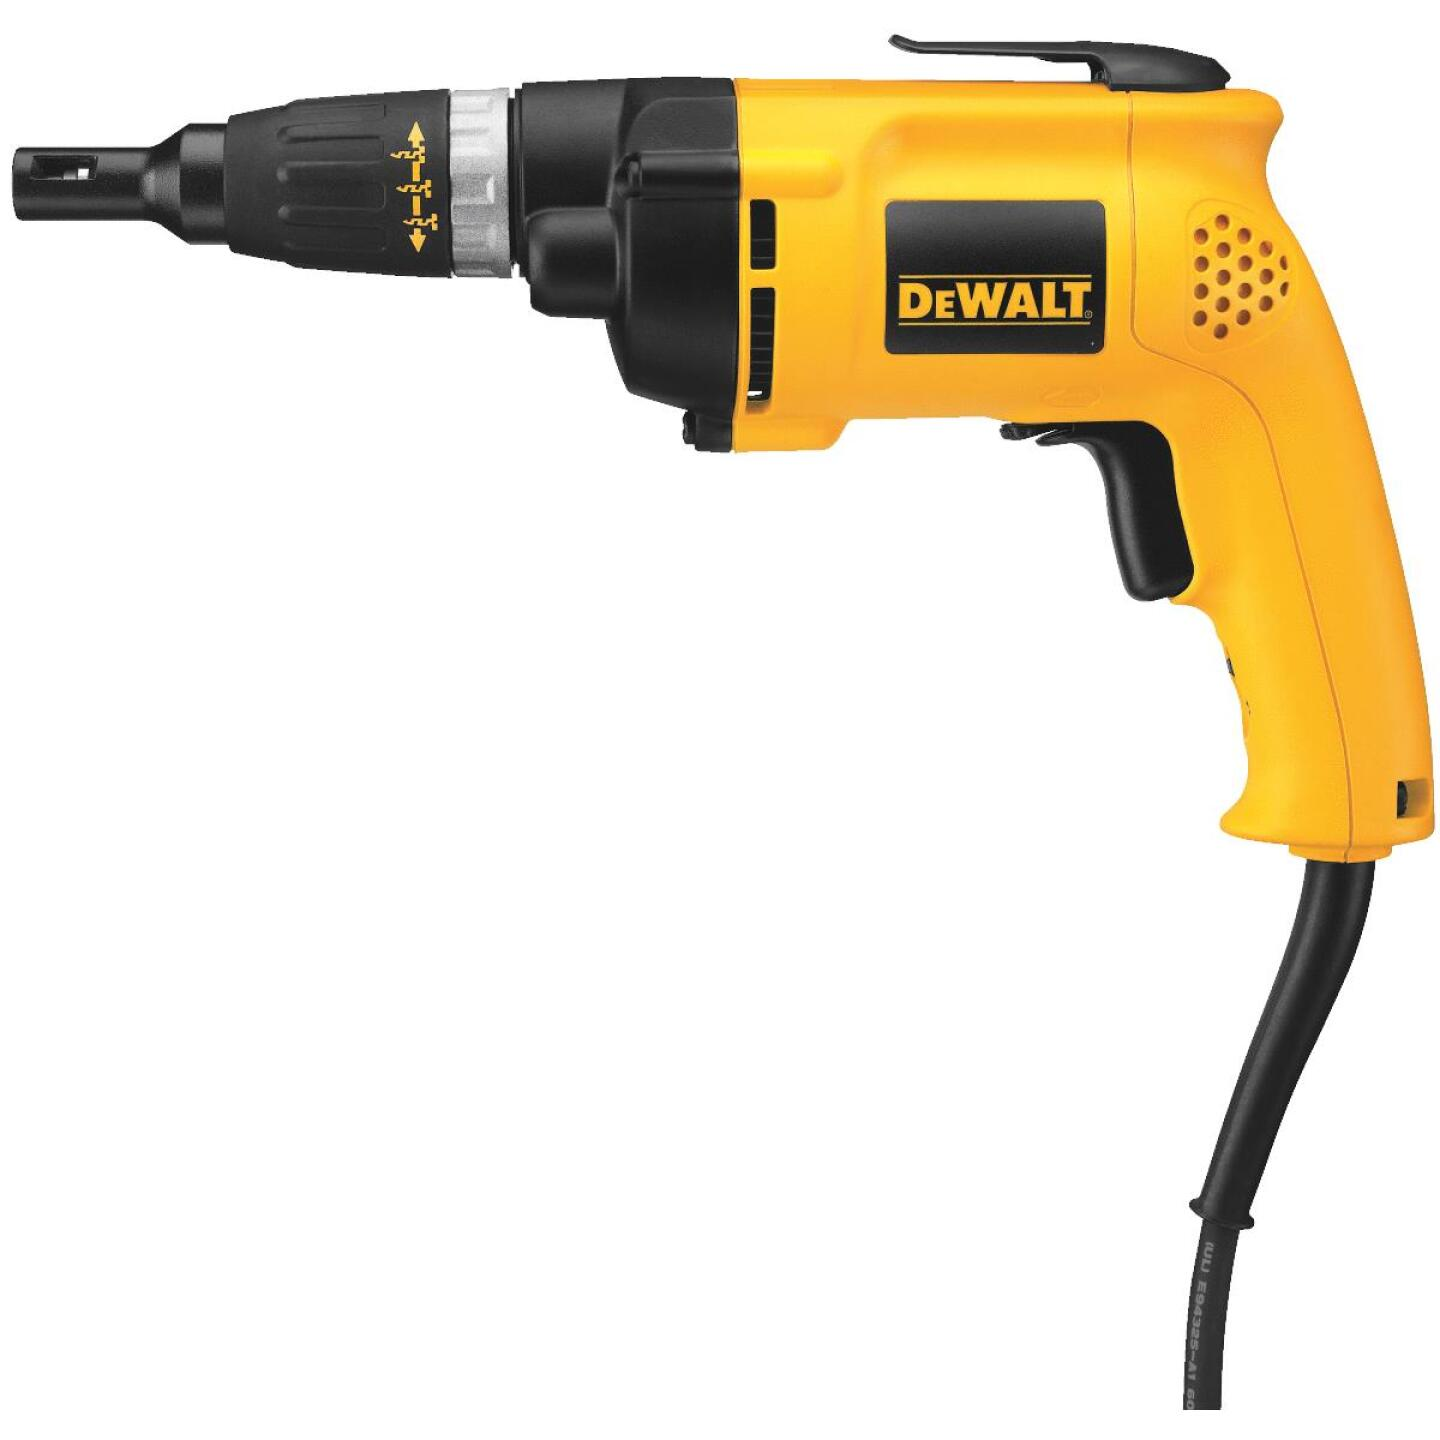 DeWalt 6A/2500 rpm #12 Electric Screwgun Image 1